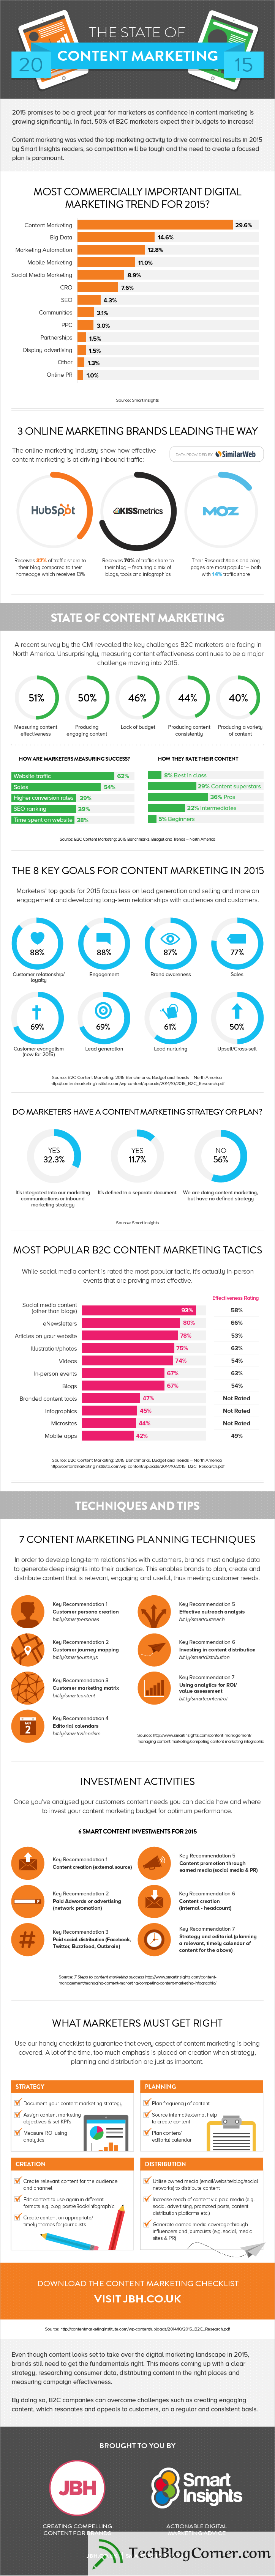 State-of-Content-Marketing-2015-analytics-infographic-techblogcorner